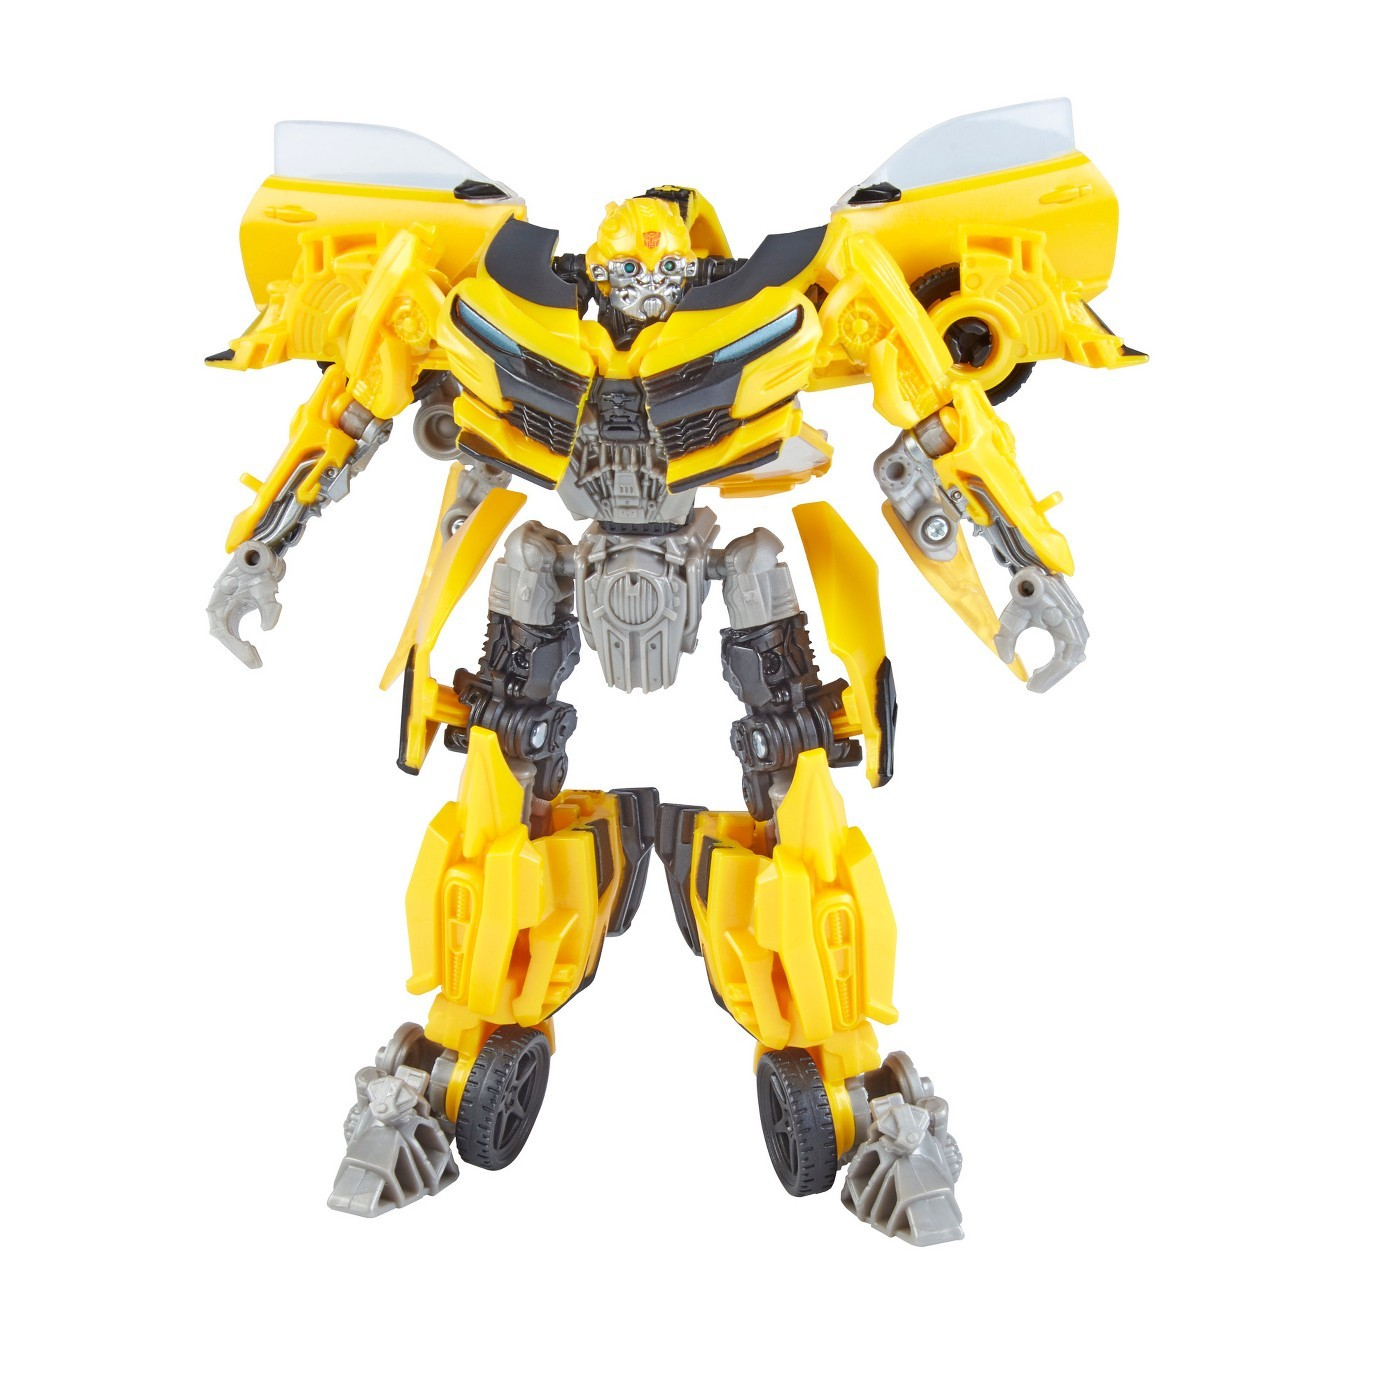 Transformers News: Transformers Studio Series Bumblebee Then and Now 2 pack now online at Target.com and found in store